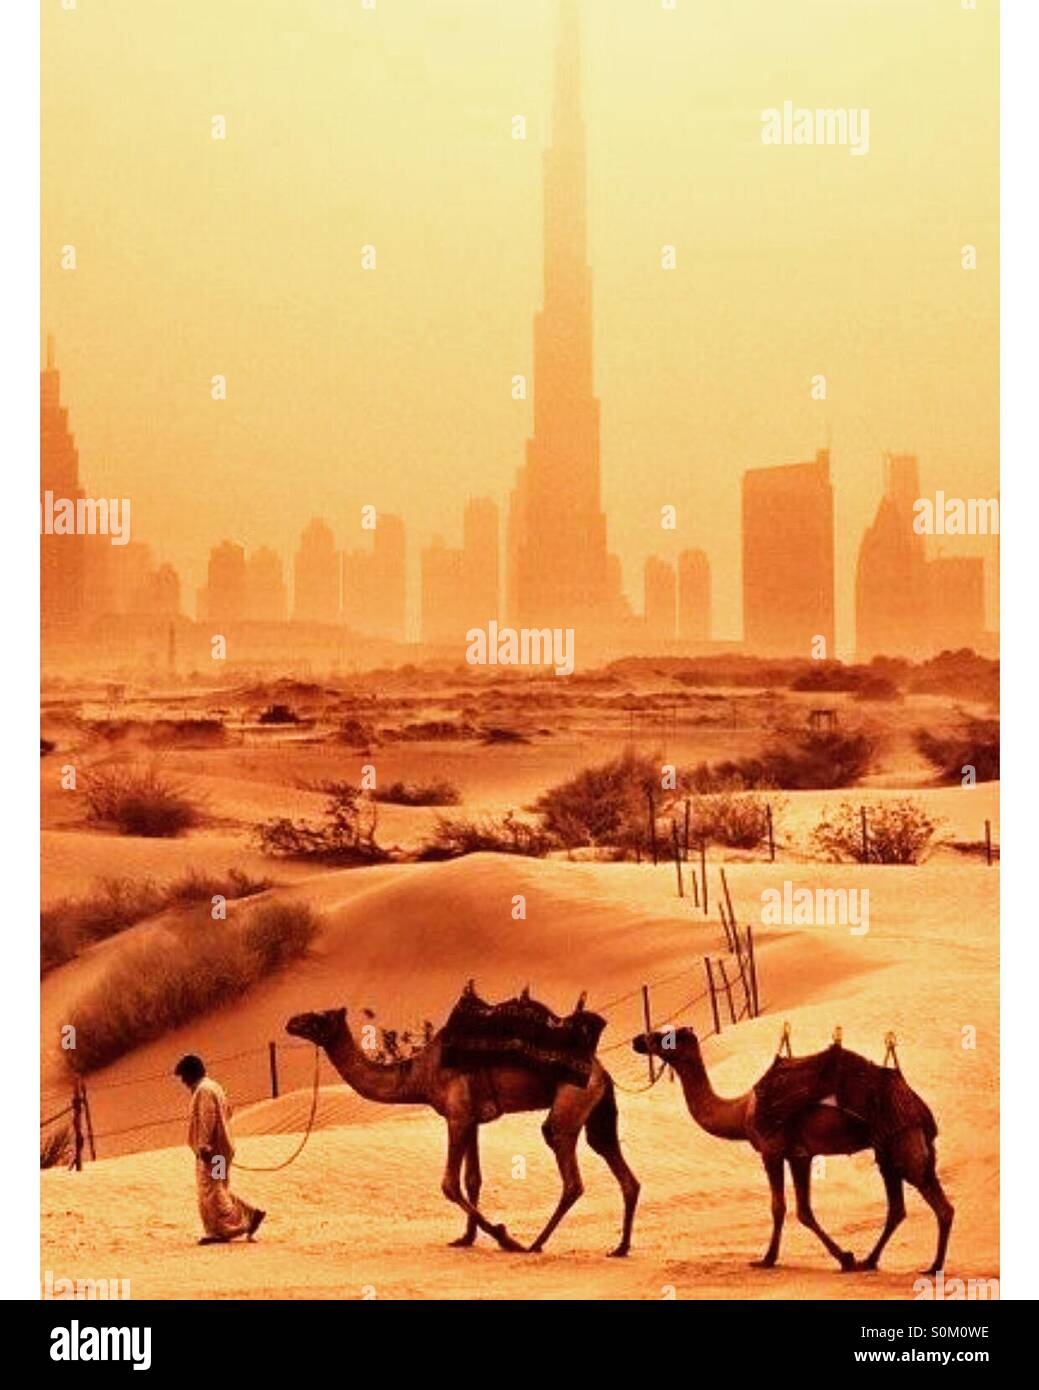 The evolution of dubai - Stock Image